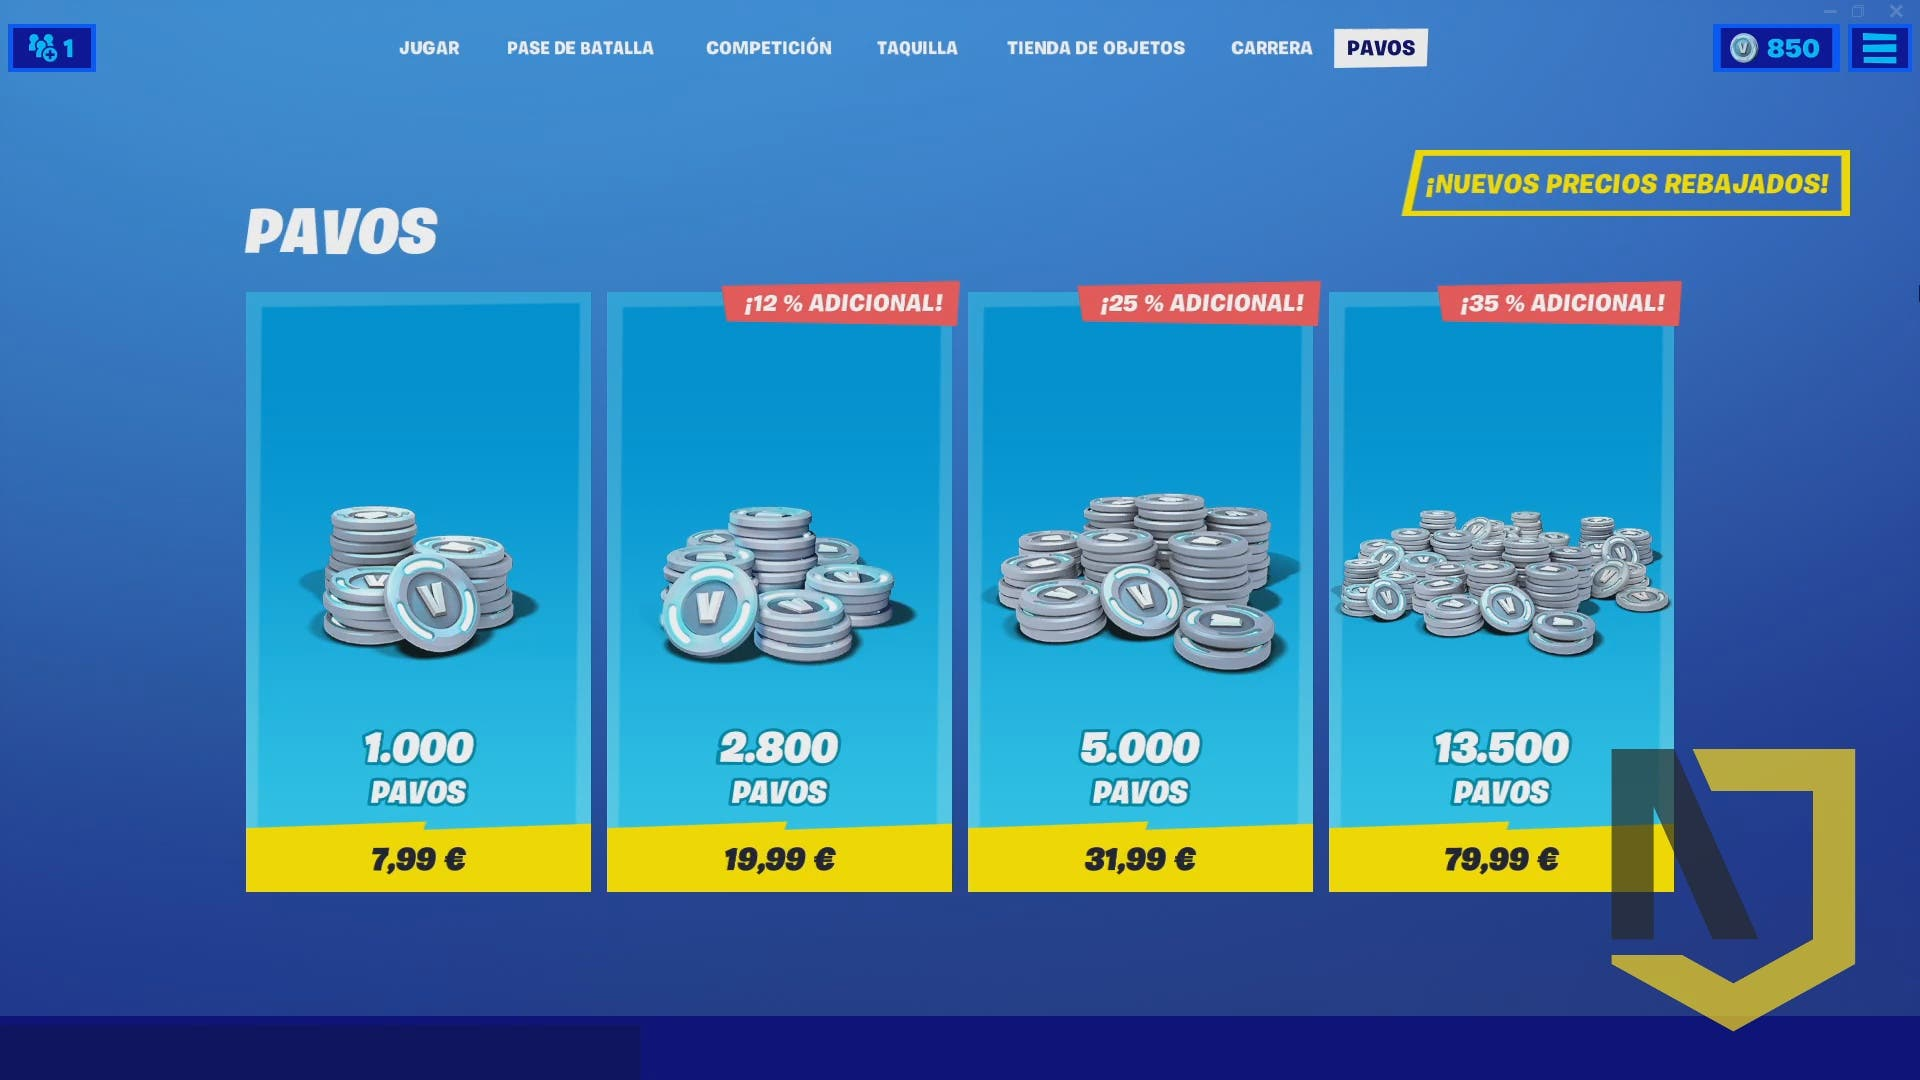 Fortnite Como Conseguir Dos Meses Gratis De Disney Plus En Espana The new home for your favorites. dos meses gratis de disney plus